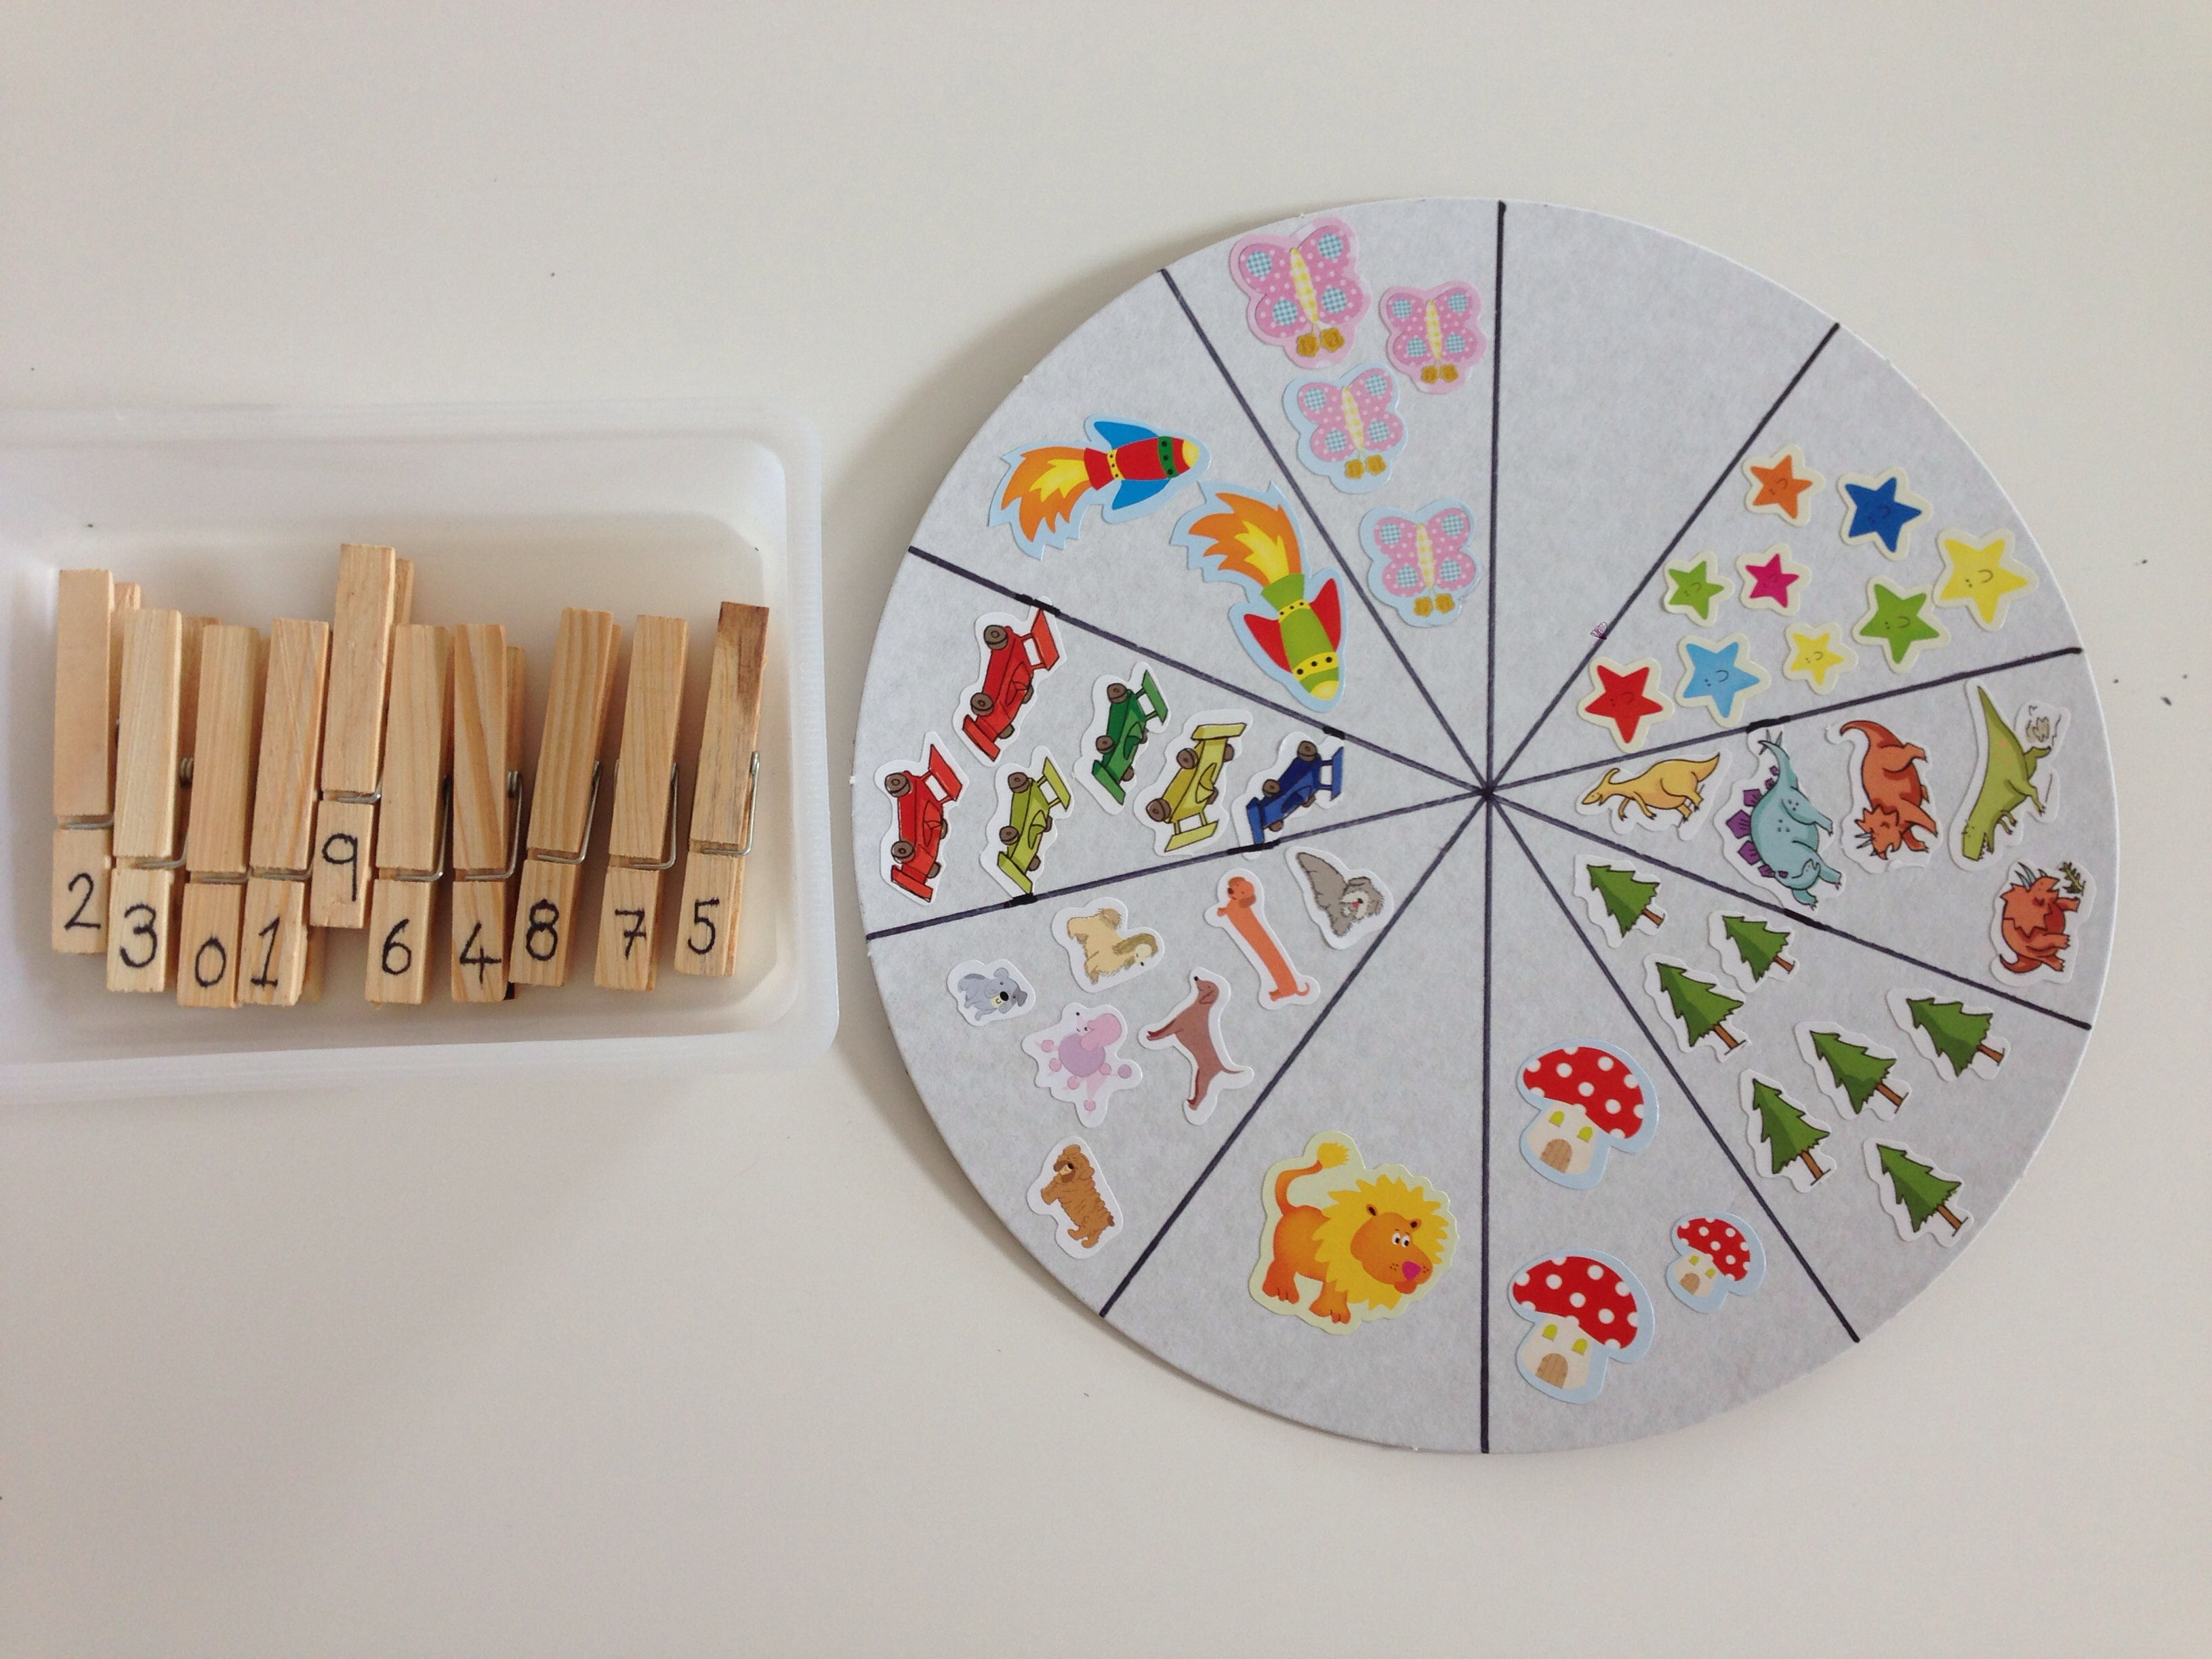 Montessori Inspired Fine Motor And Number Recognition Activity Using Clothes Pegs And A